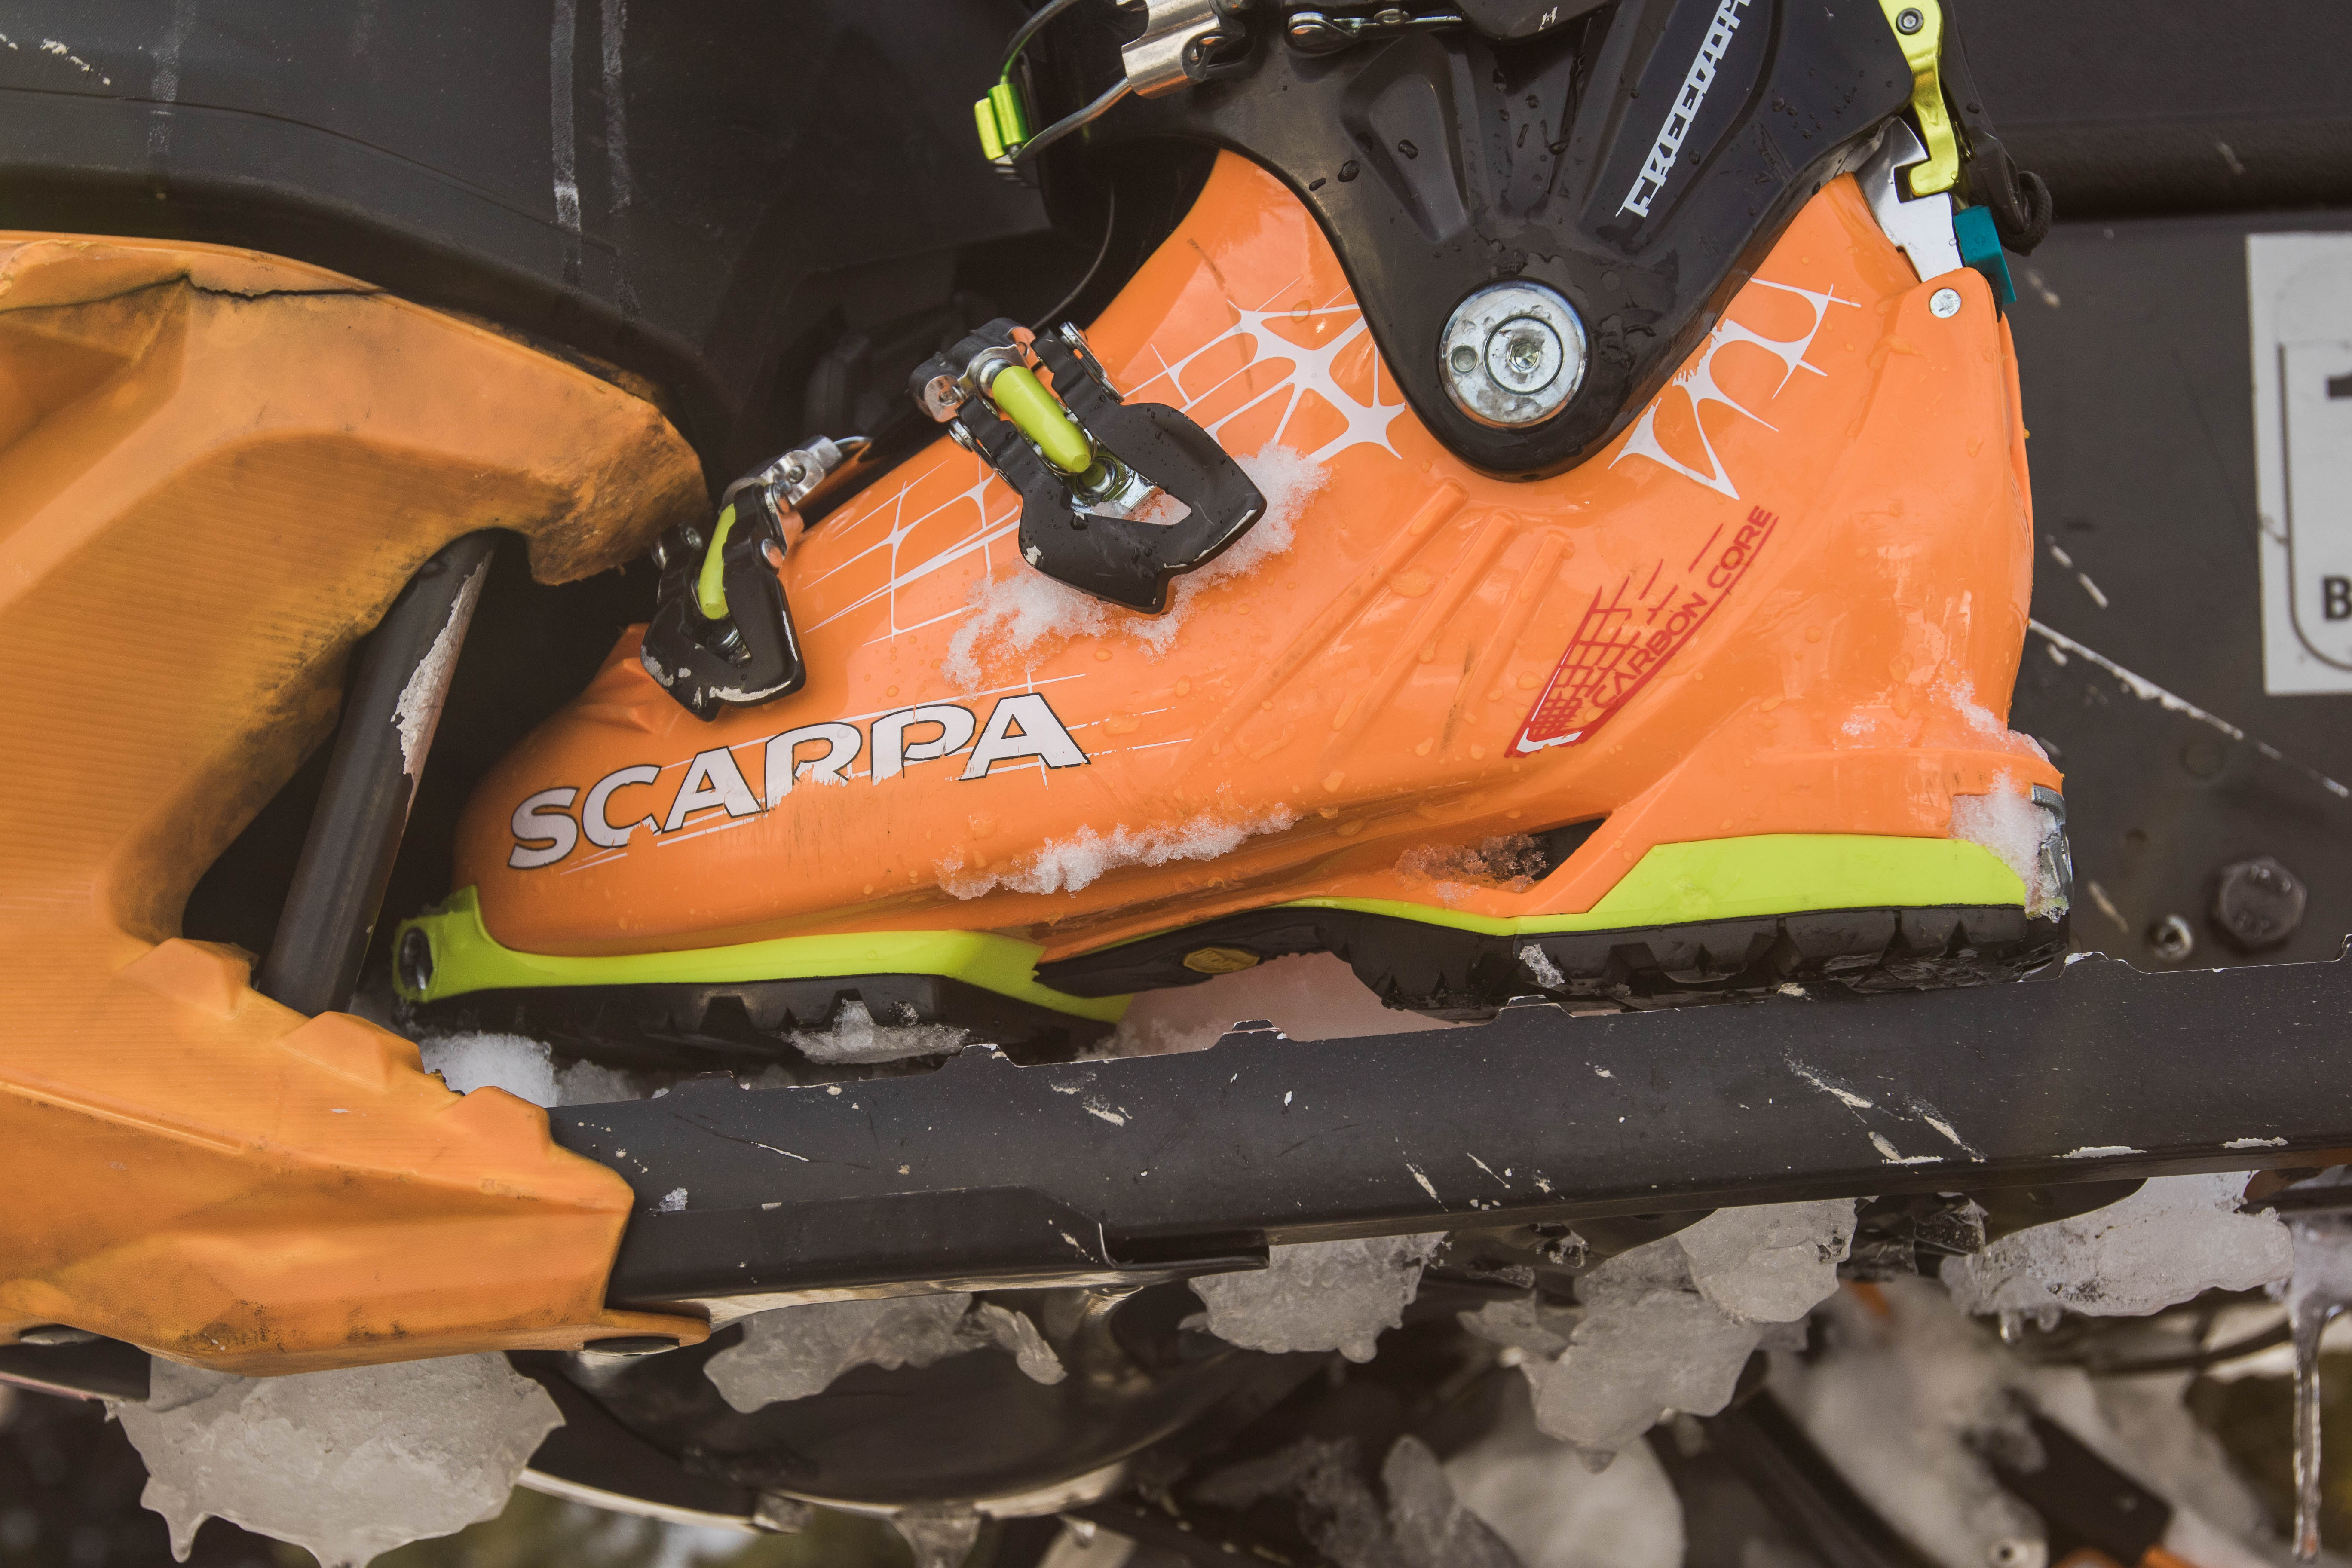 scarpa-fs-130-freeride-boots-10-of-10